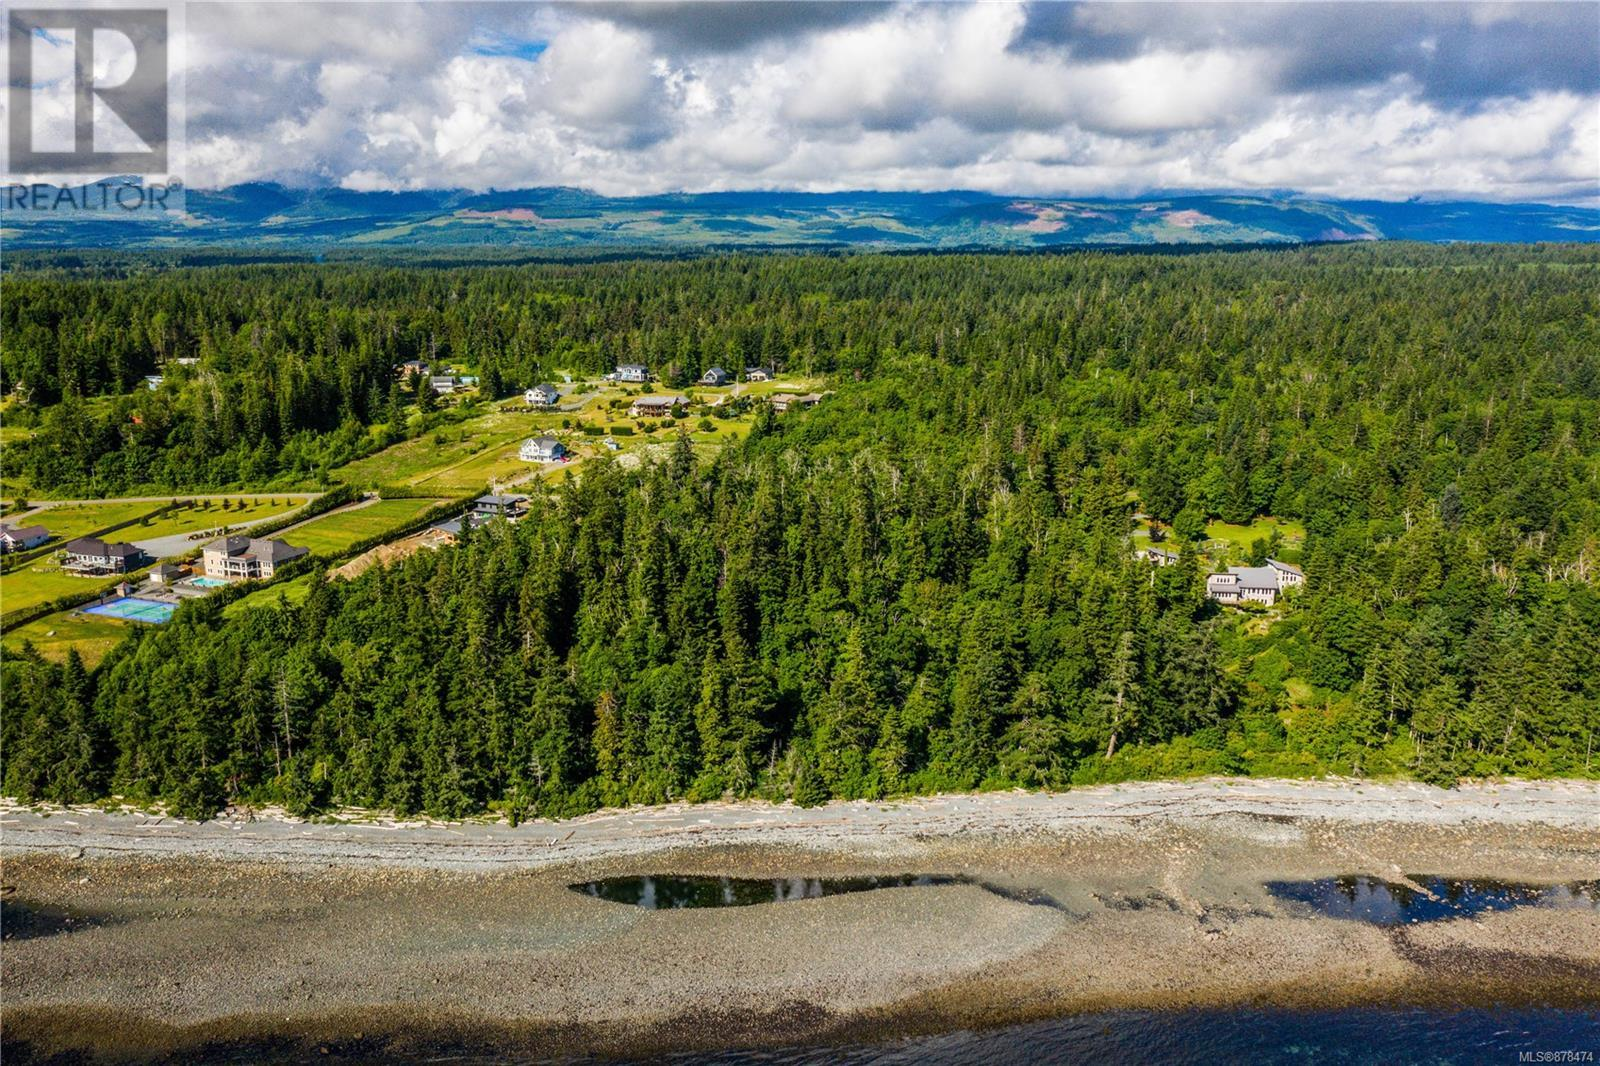 MLS® #878474 - Courtenay For sale Image #42